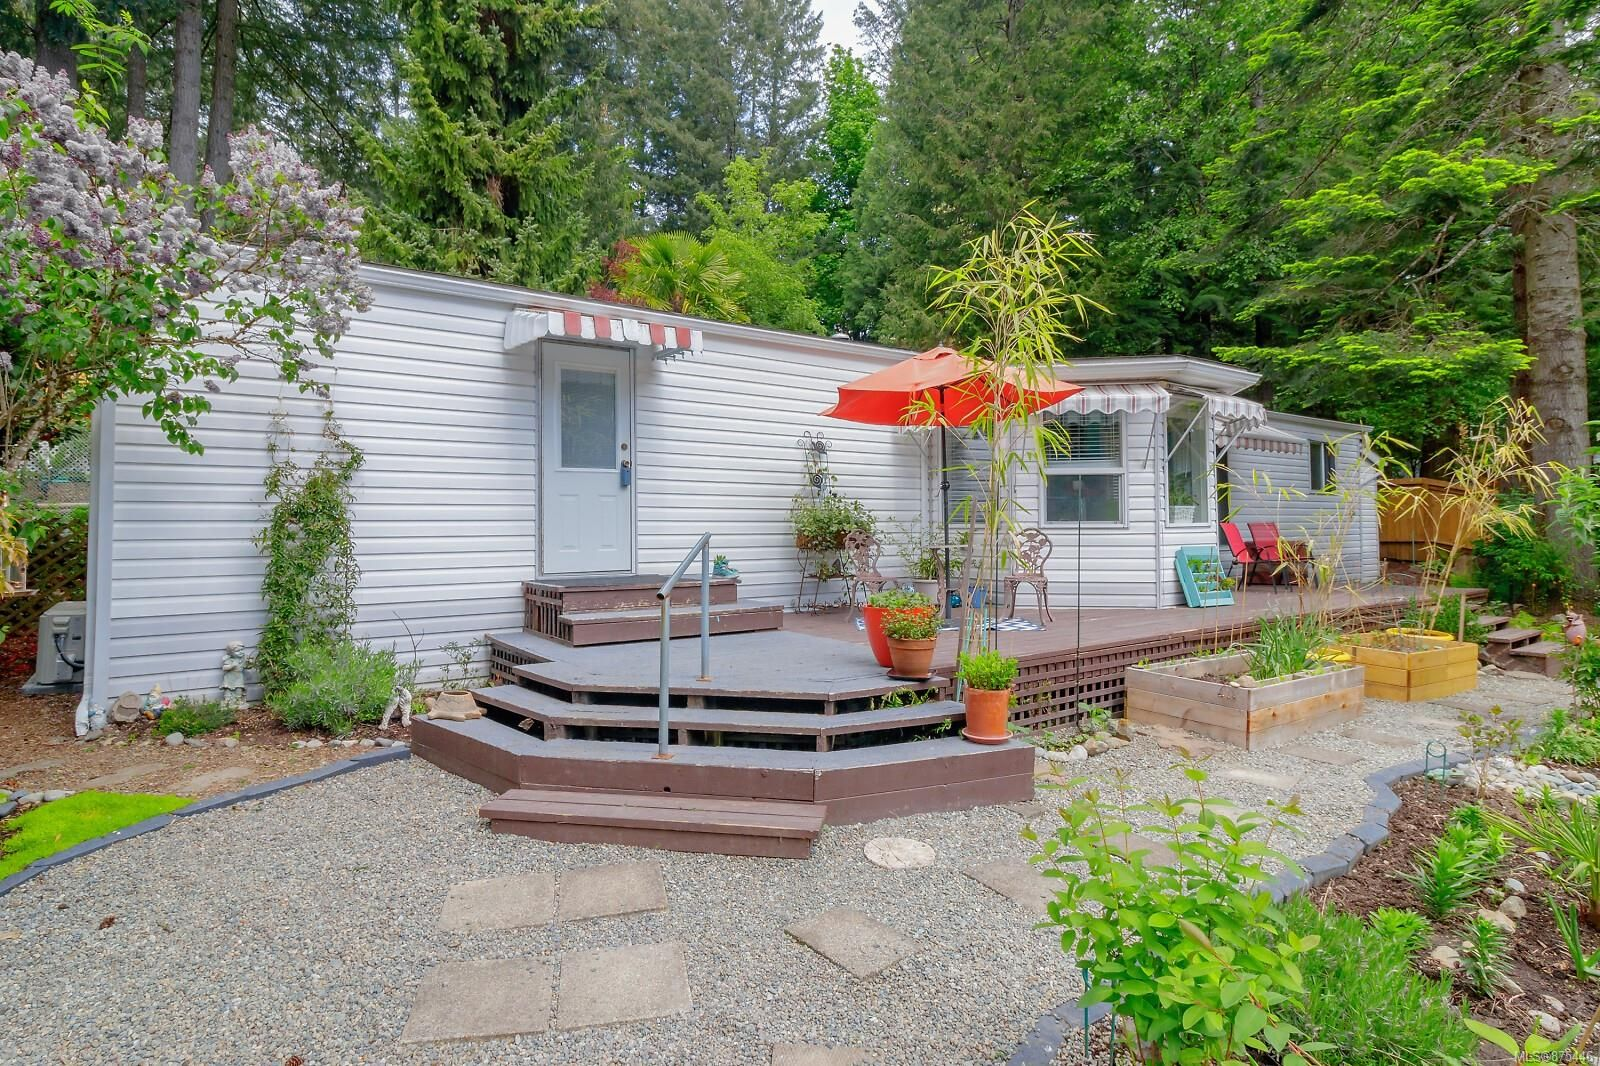 Main Photo: 36 2500 Florence Lake Rd in : La Florence Lake Manufactured Home for sale (Langford)  : MLS®# 875446